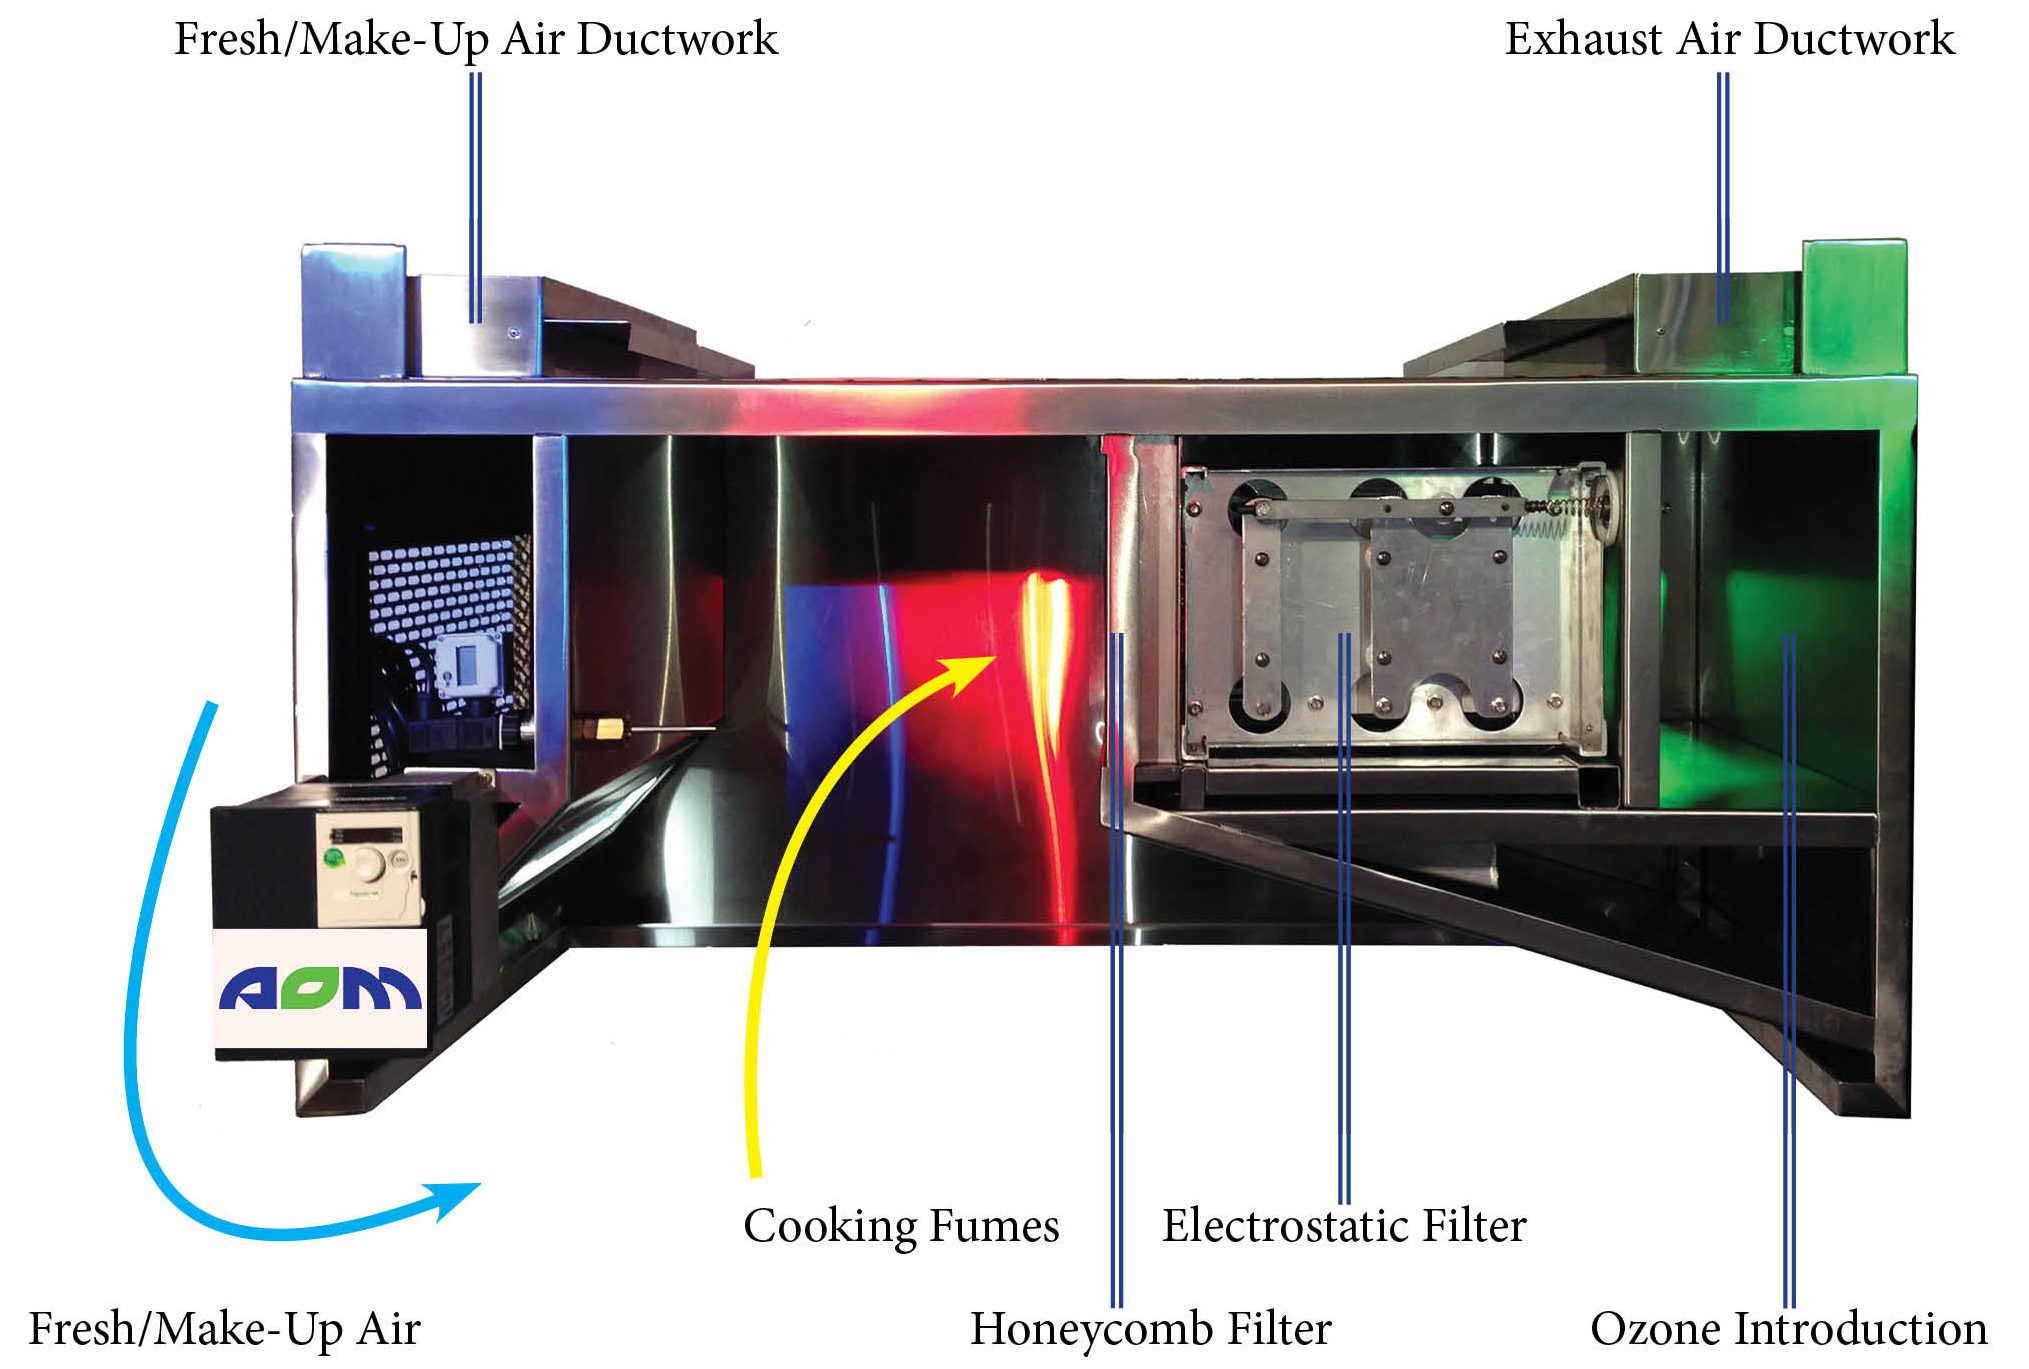 AOM Air and Odor Management Kitchen Hood inside ductwork